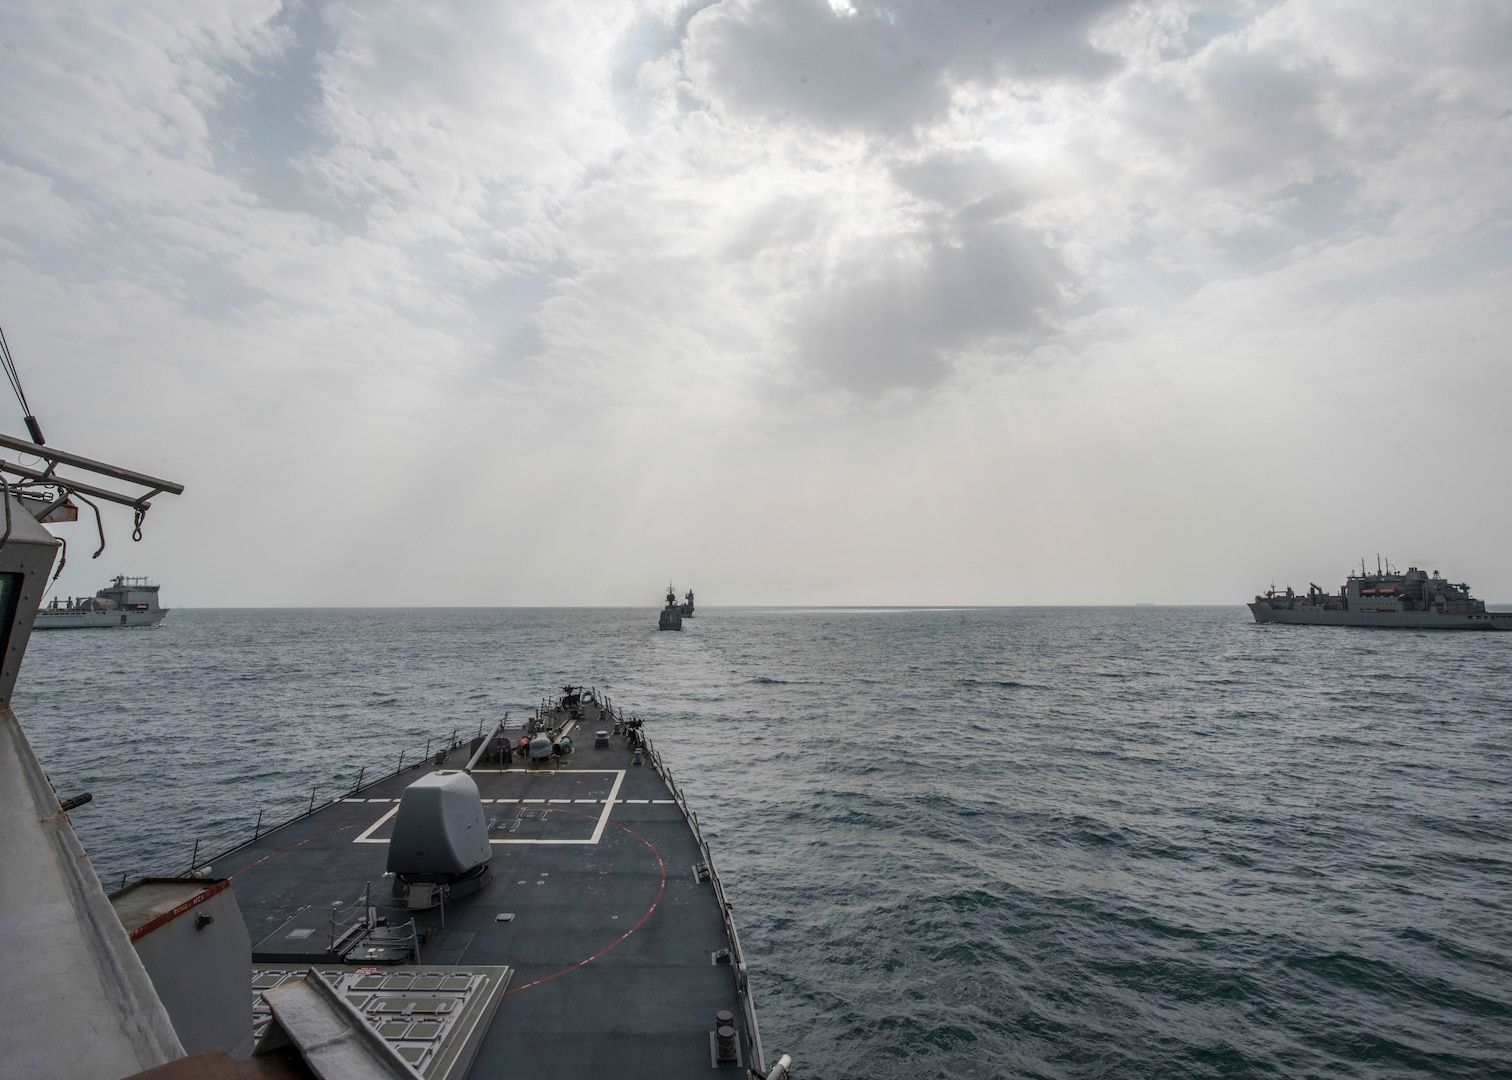 170201-N-CS953-008